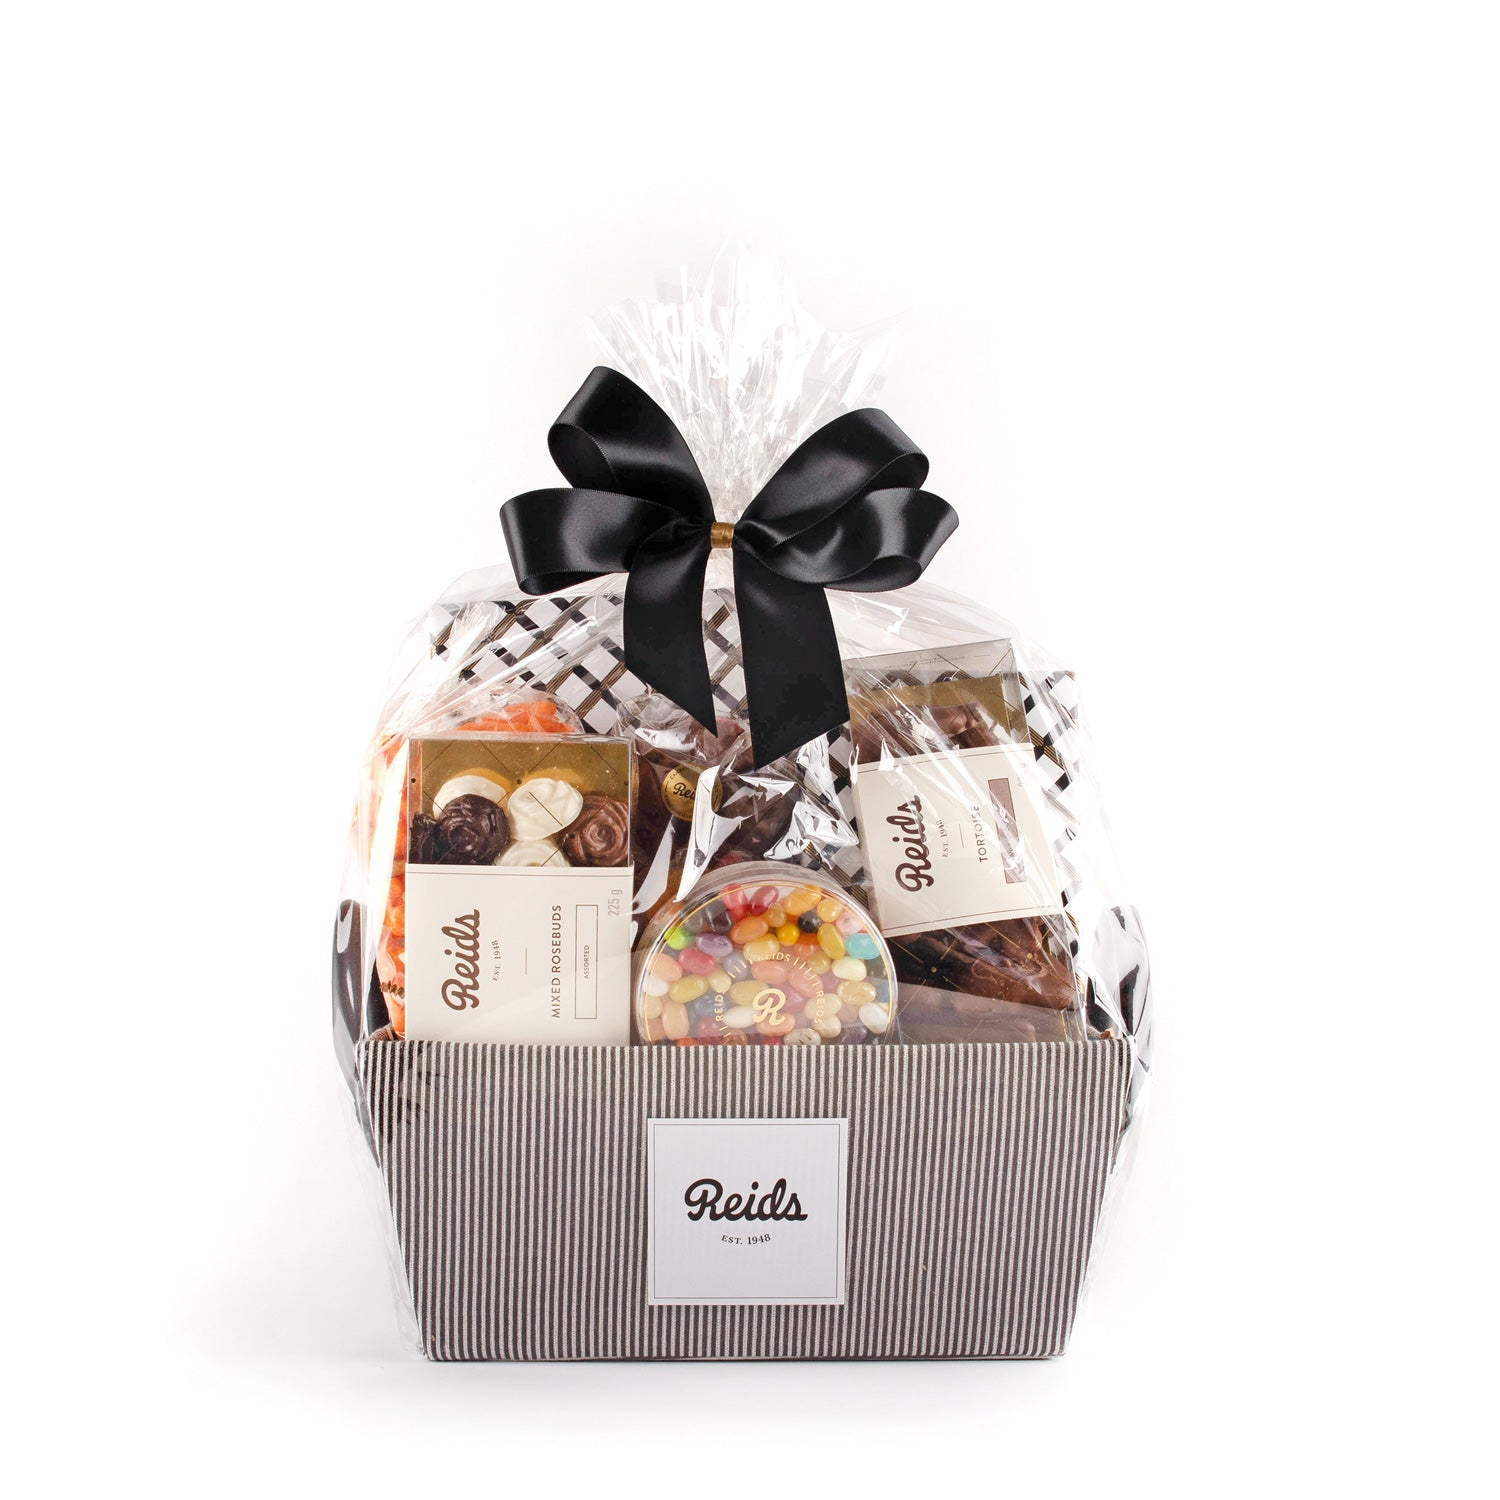 The medium basket comes in a black and white pinstriped basket wrapped in cellophane and tied with a black stain bow